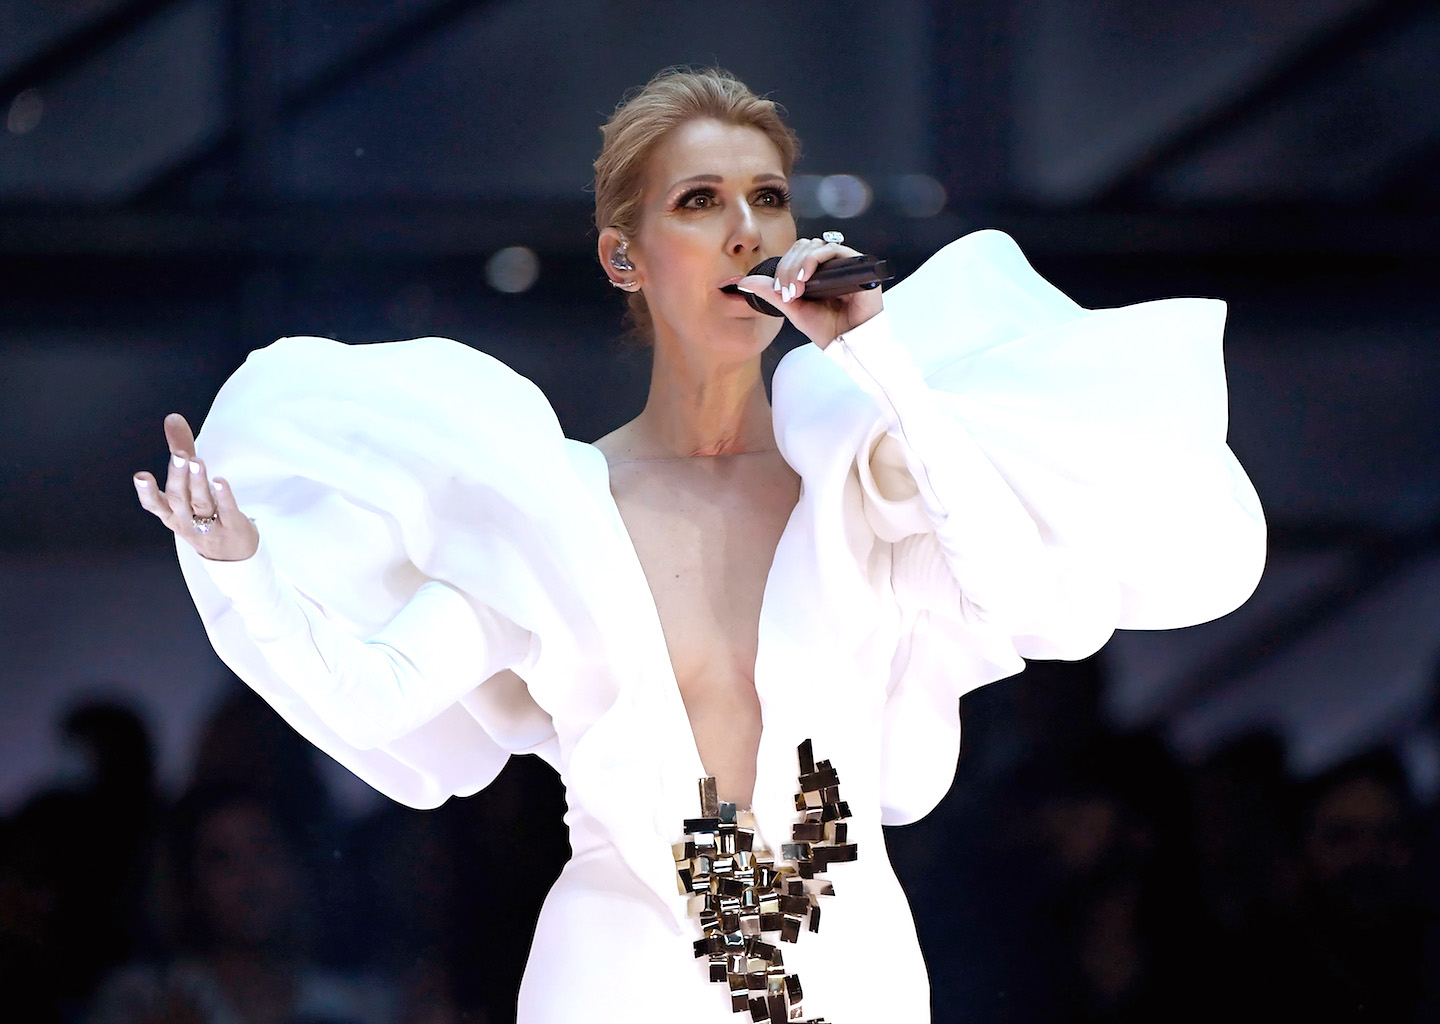 1e5db475f48e Celine Dion's Children's Clothing Line Called 'Satanic' by Priest - VICE